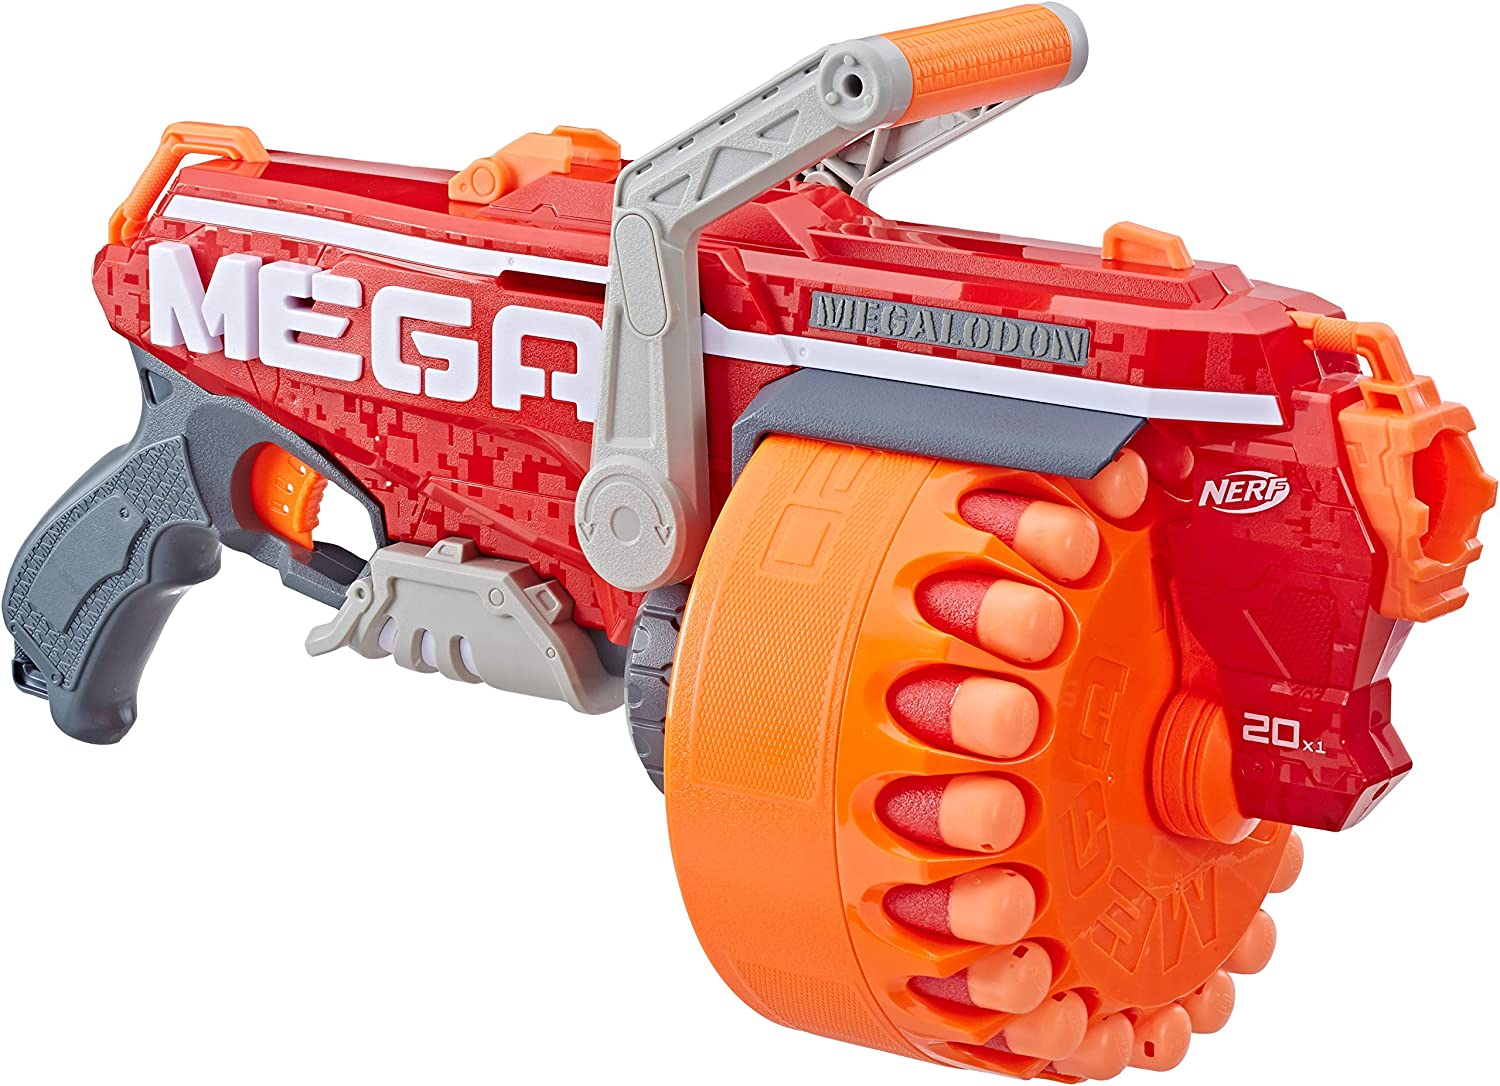 Top 10 Best Nerf Guns (2020 Reviews & Buying Guide) 4